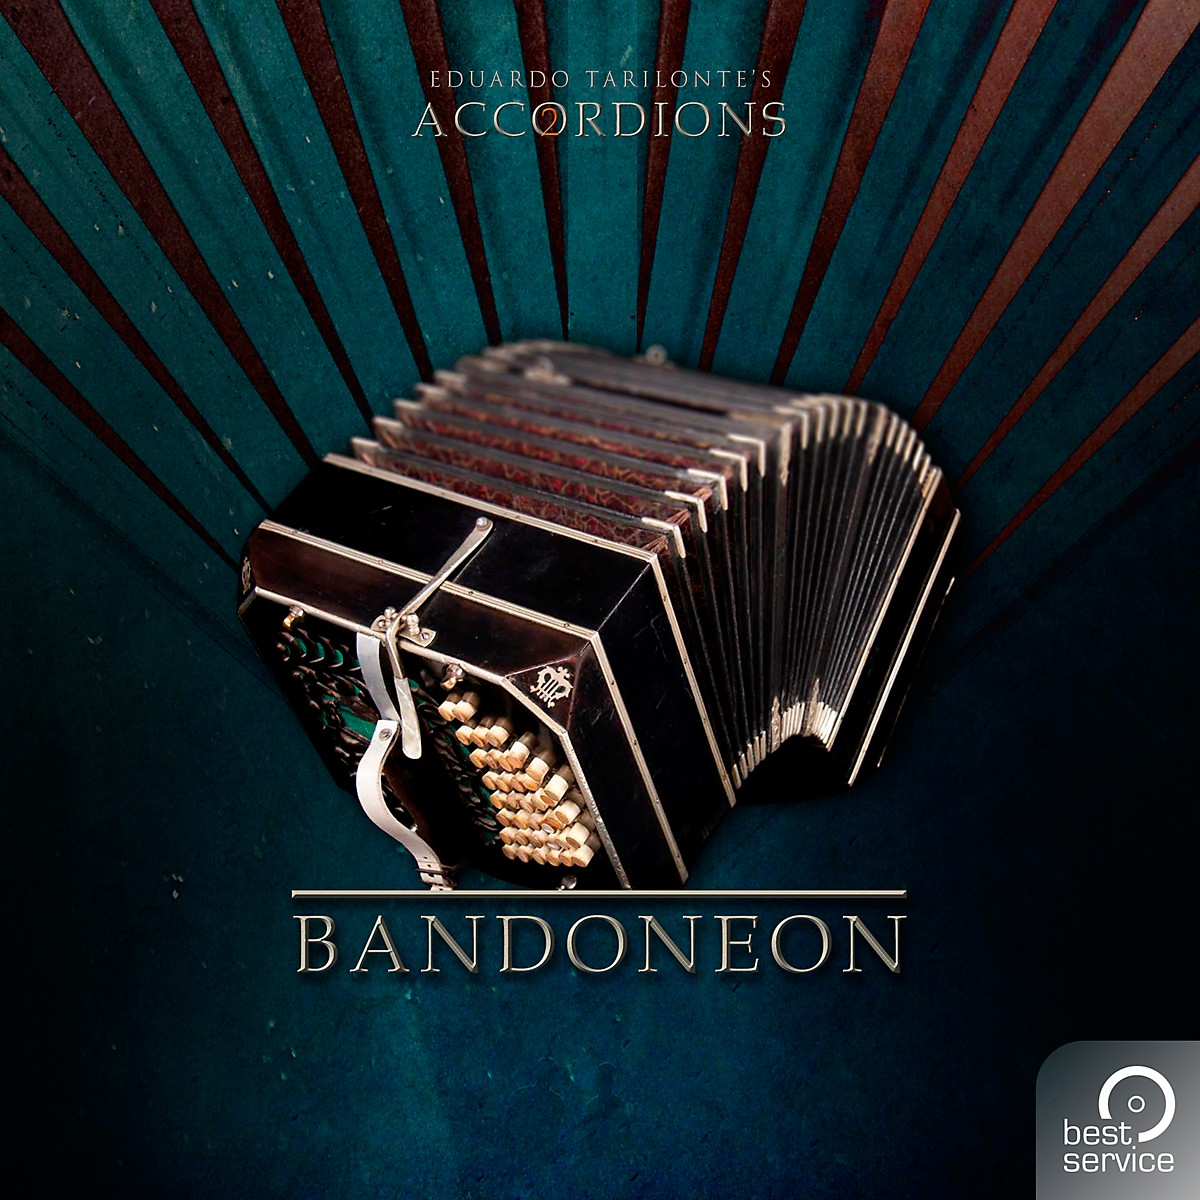 Best Service Accordions 2 - Single Bandoneon